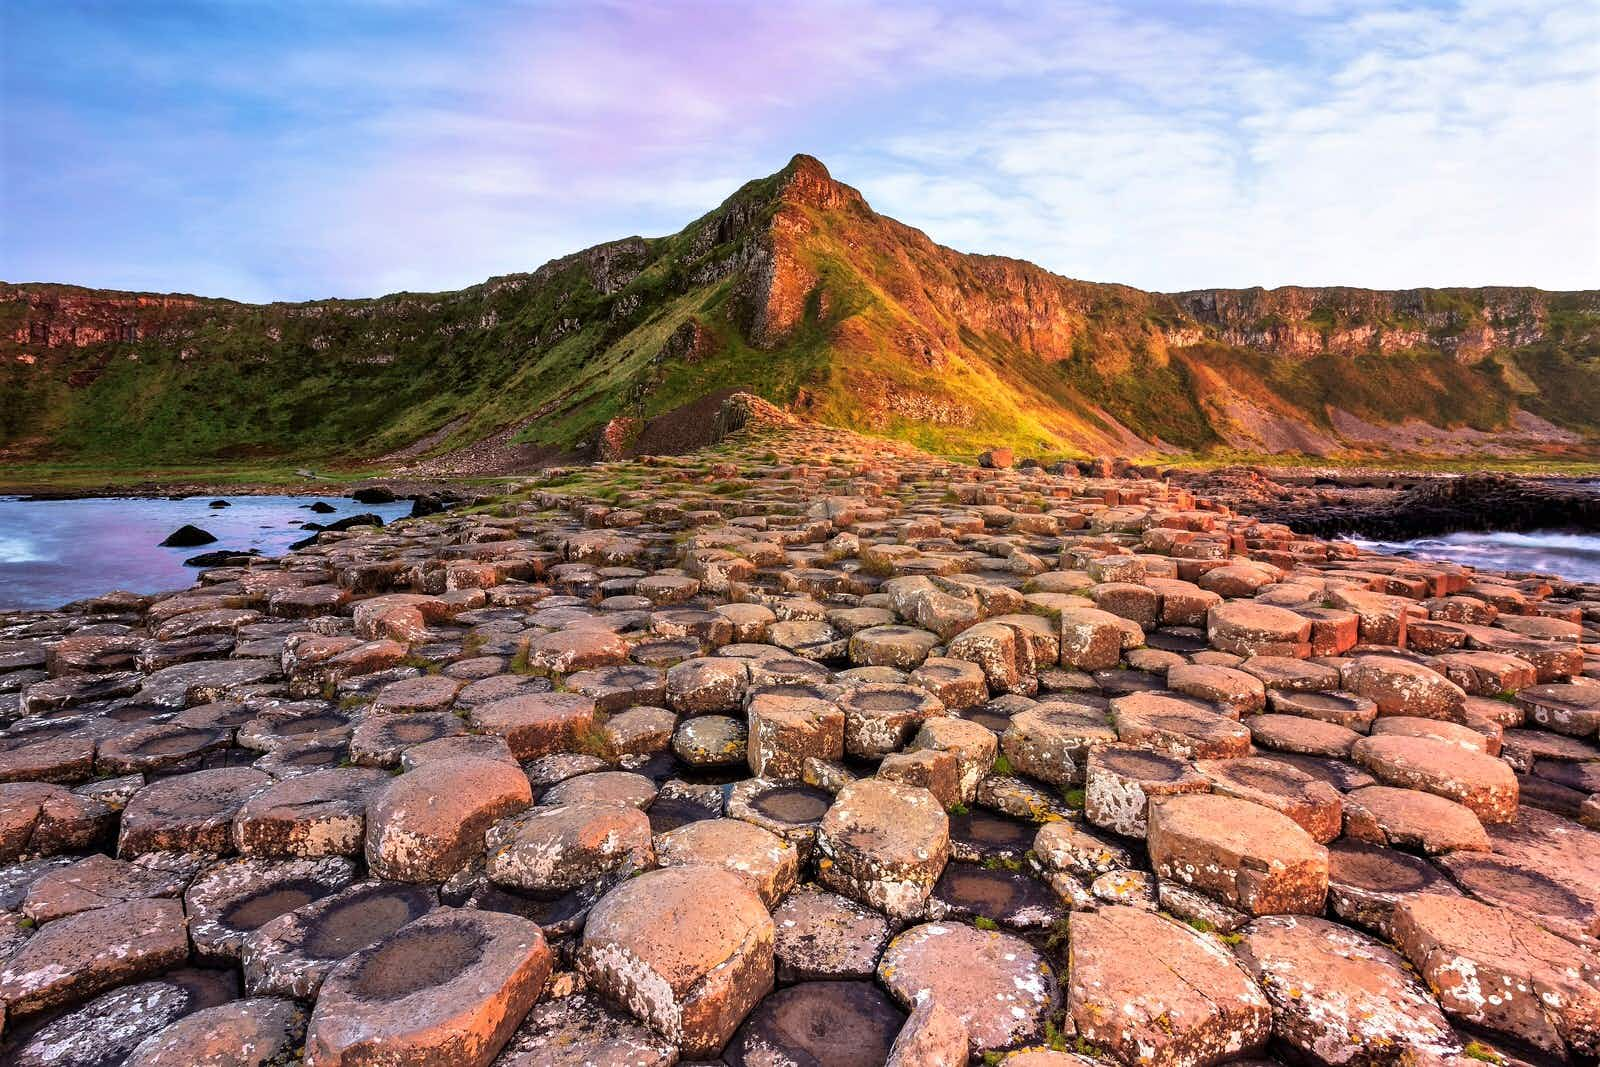 The Giant's Causeway is the most famous mythical site on the island of Ireland © joe daniel price / Getty Images